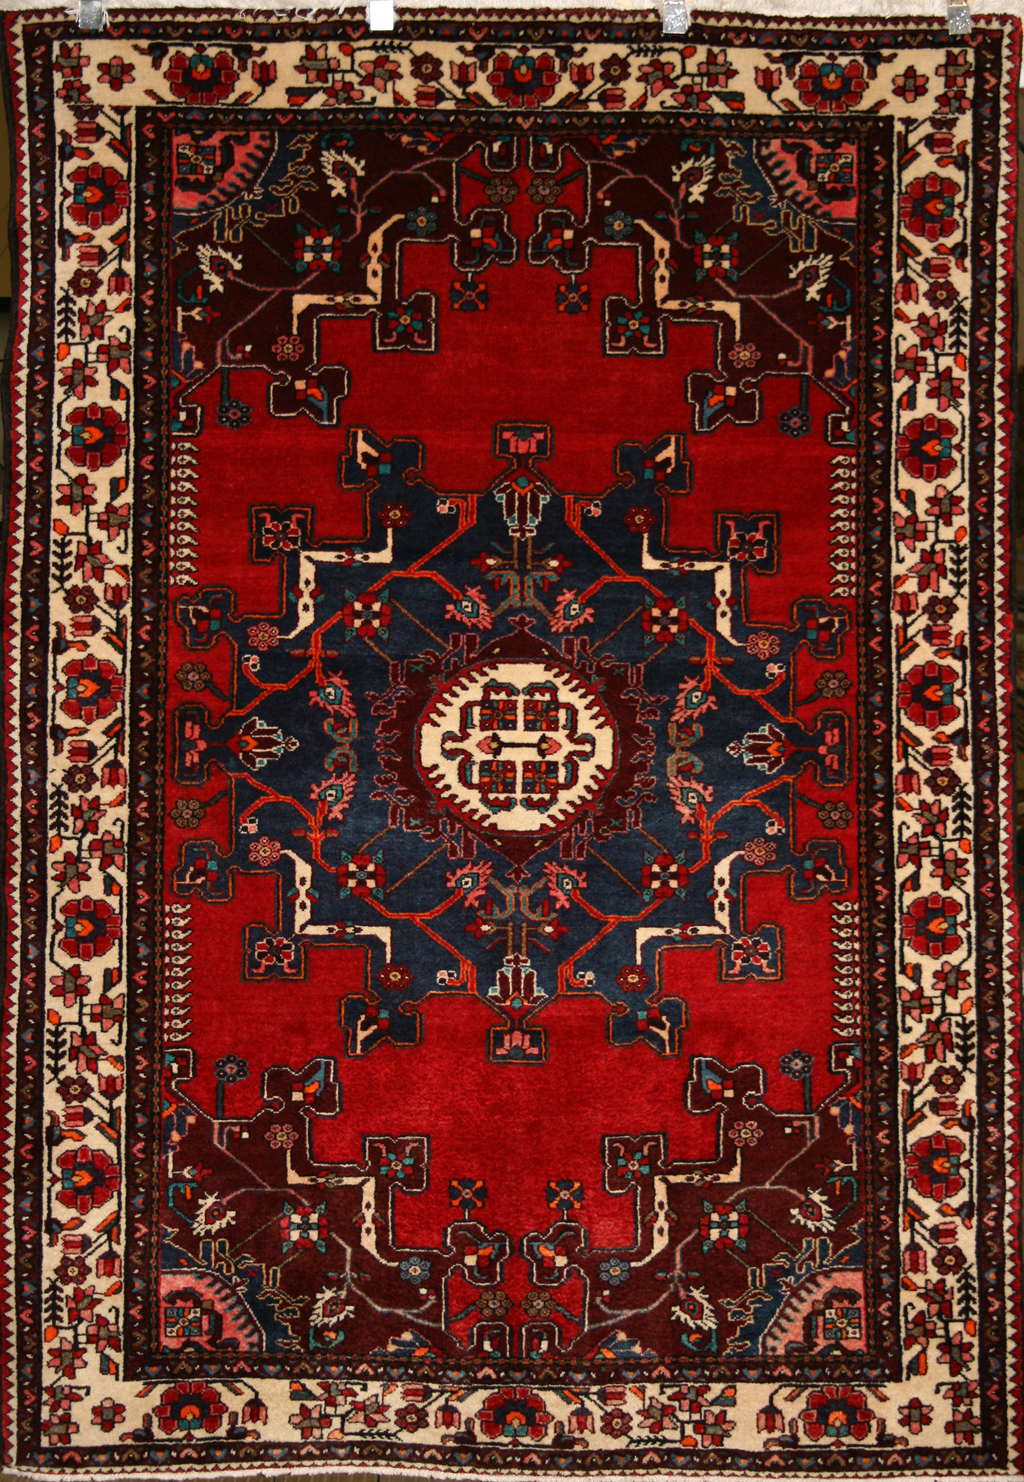 Asian Carpet Persian Hand Knotted Tafresh Rug In Wool Cotton Foundation Ref